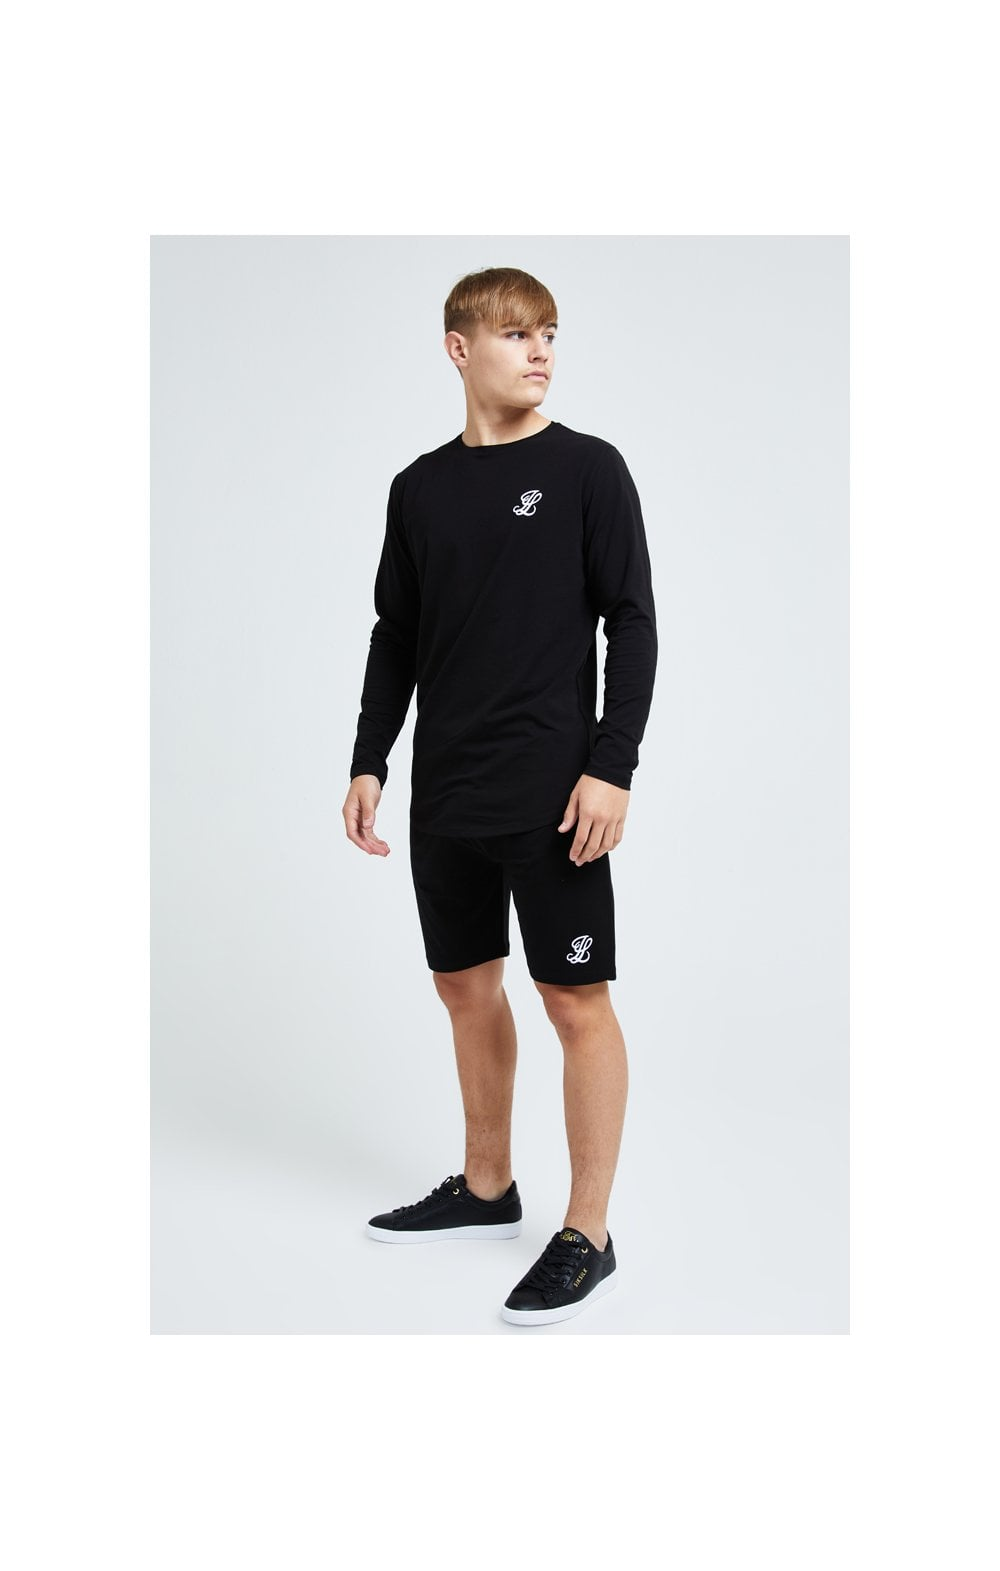 Illusive London L/S Core Tee - Black (2)